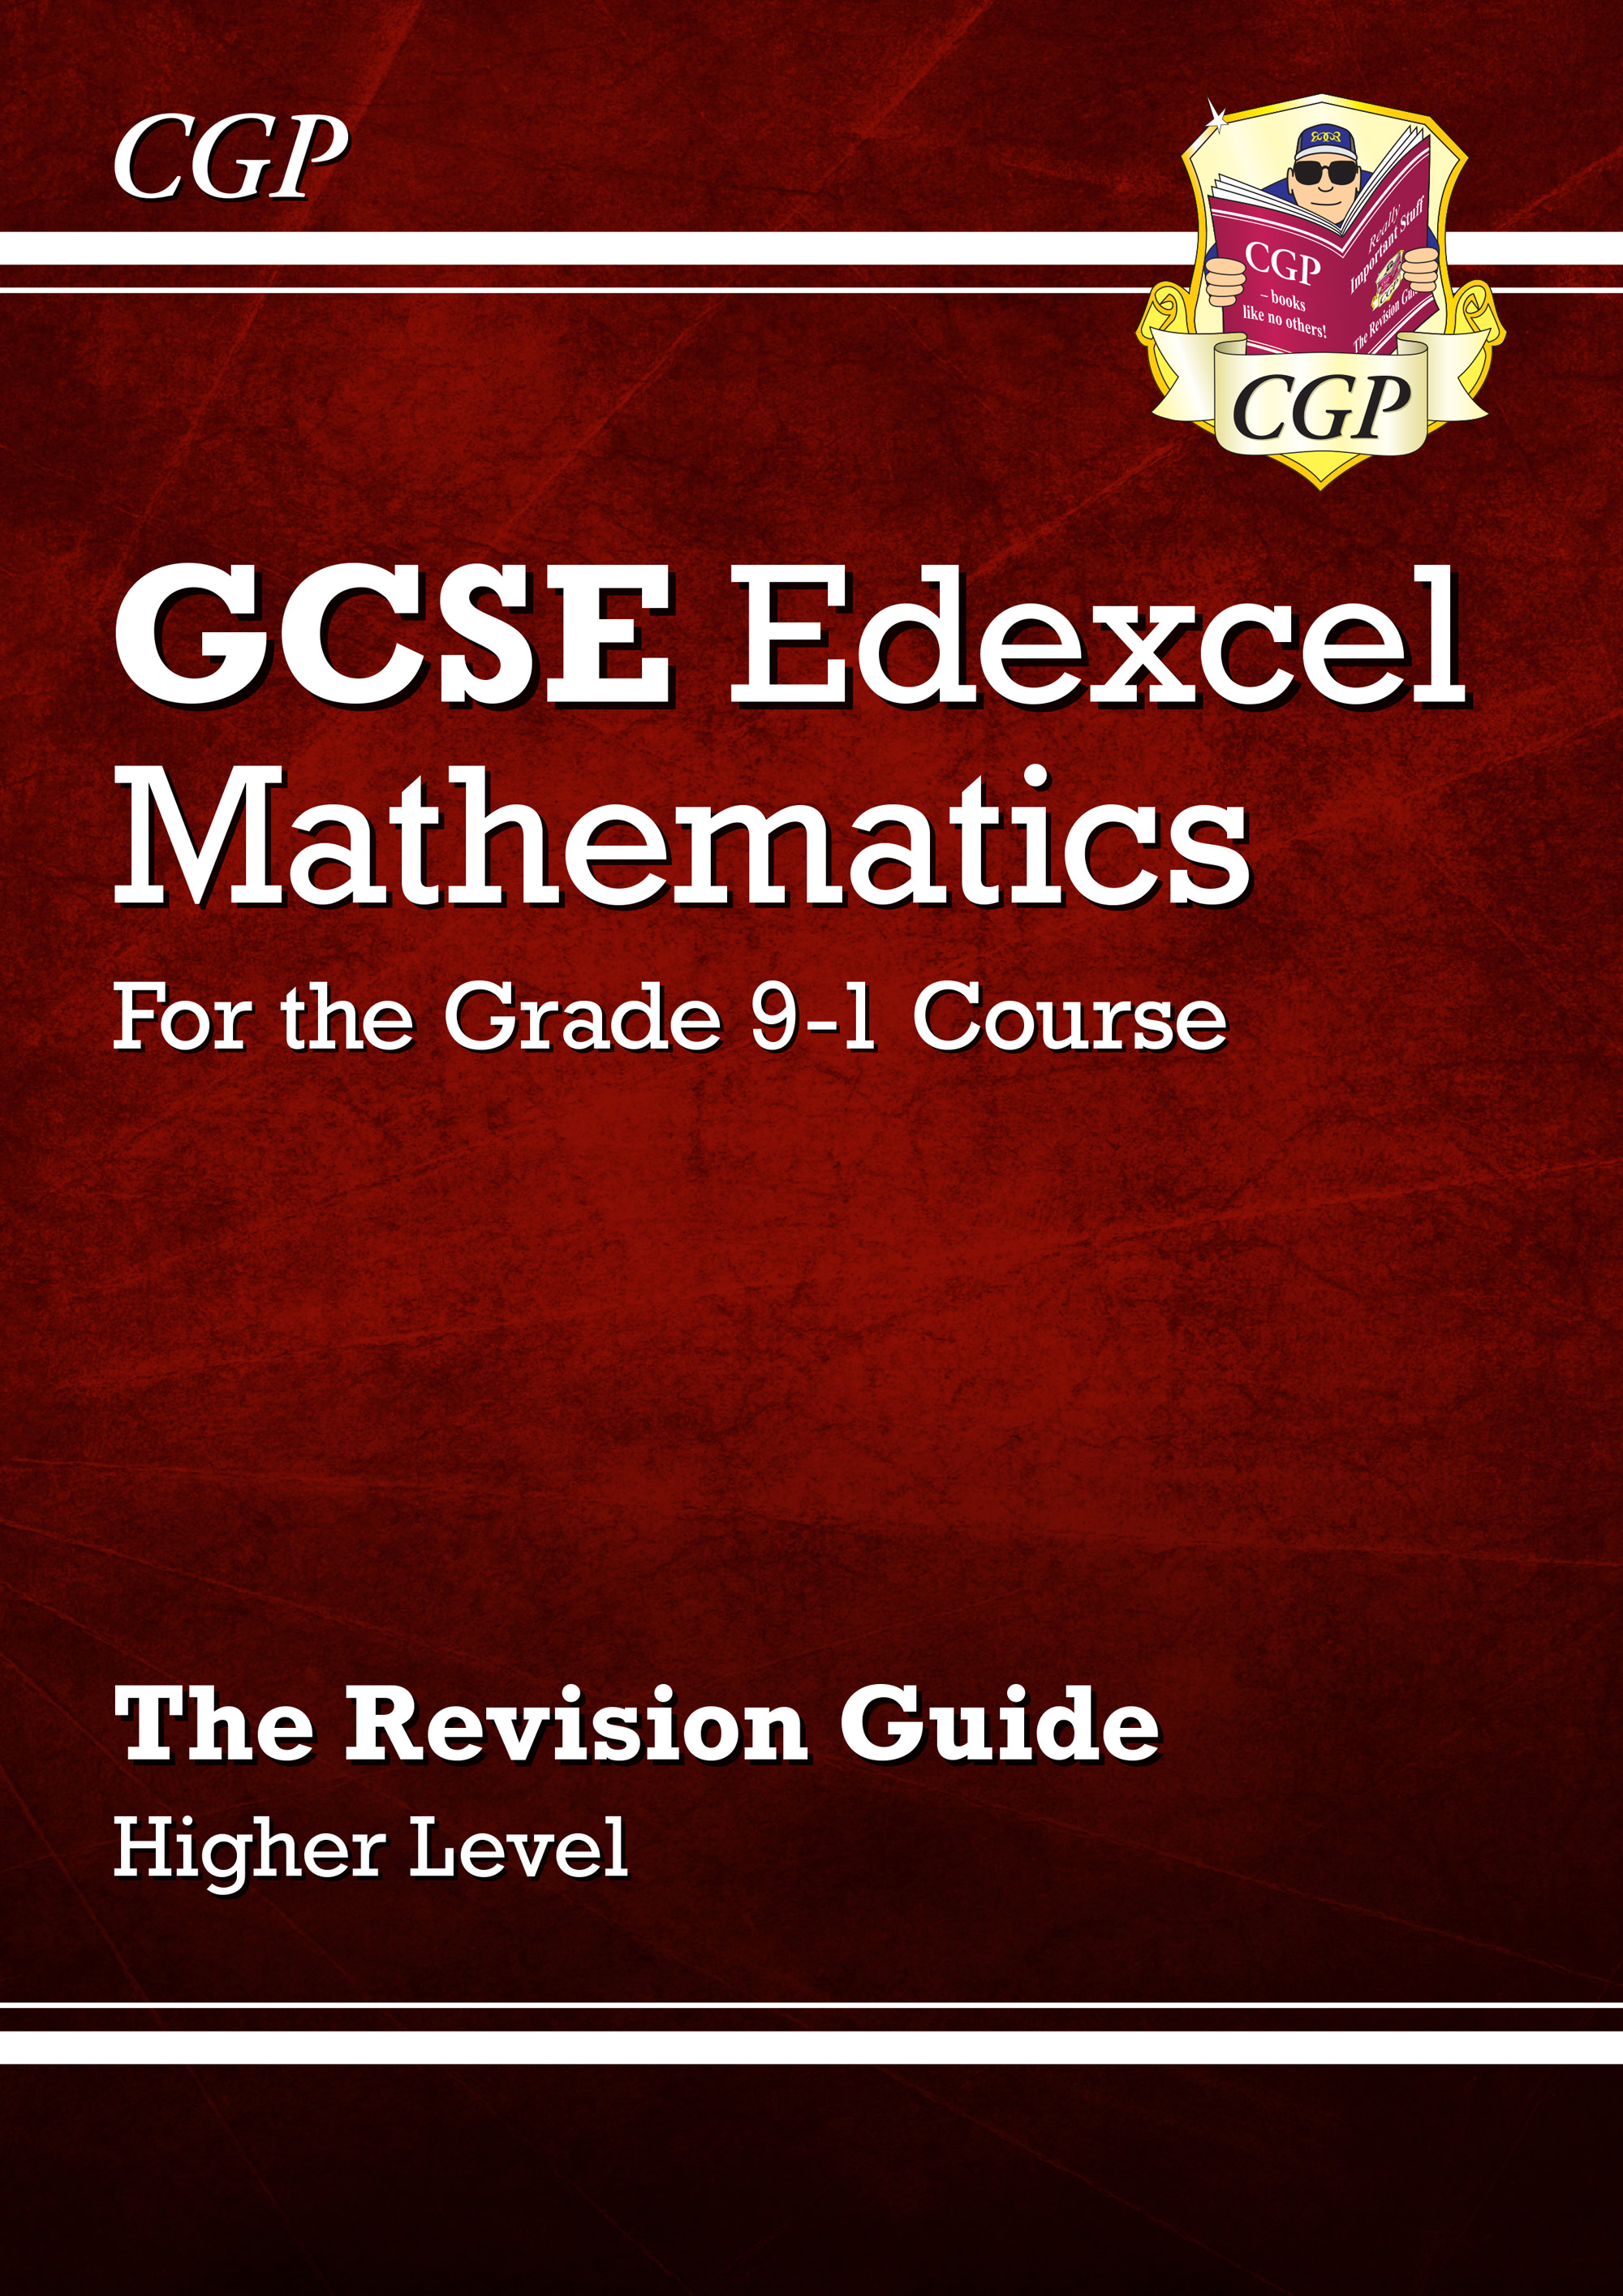 MXHR46D - GCSE Maths Edexcel Revision Guide: Higher - for the Grade 9-1 Course (Online Edition)